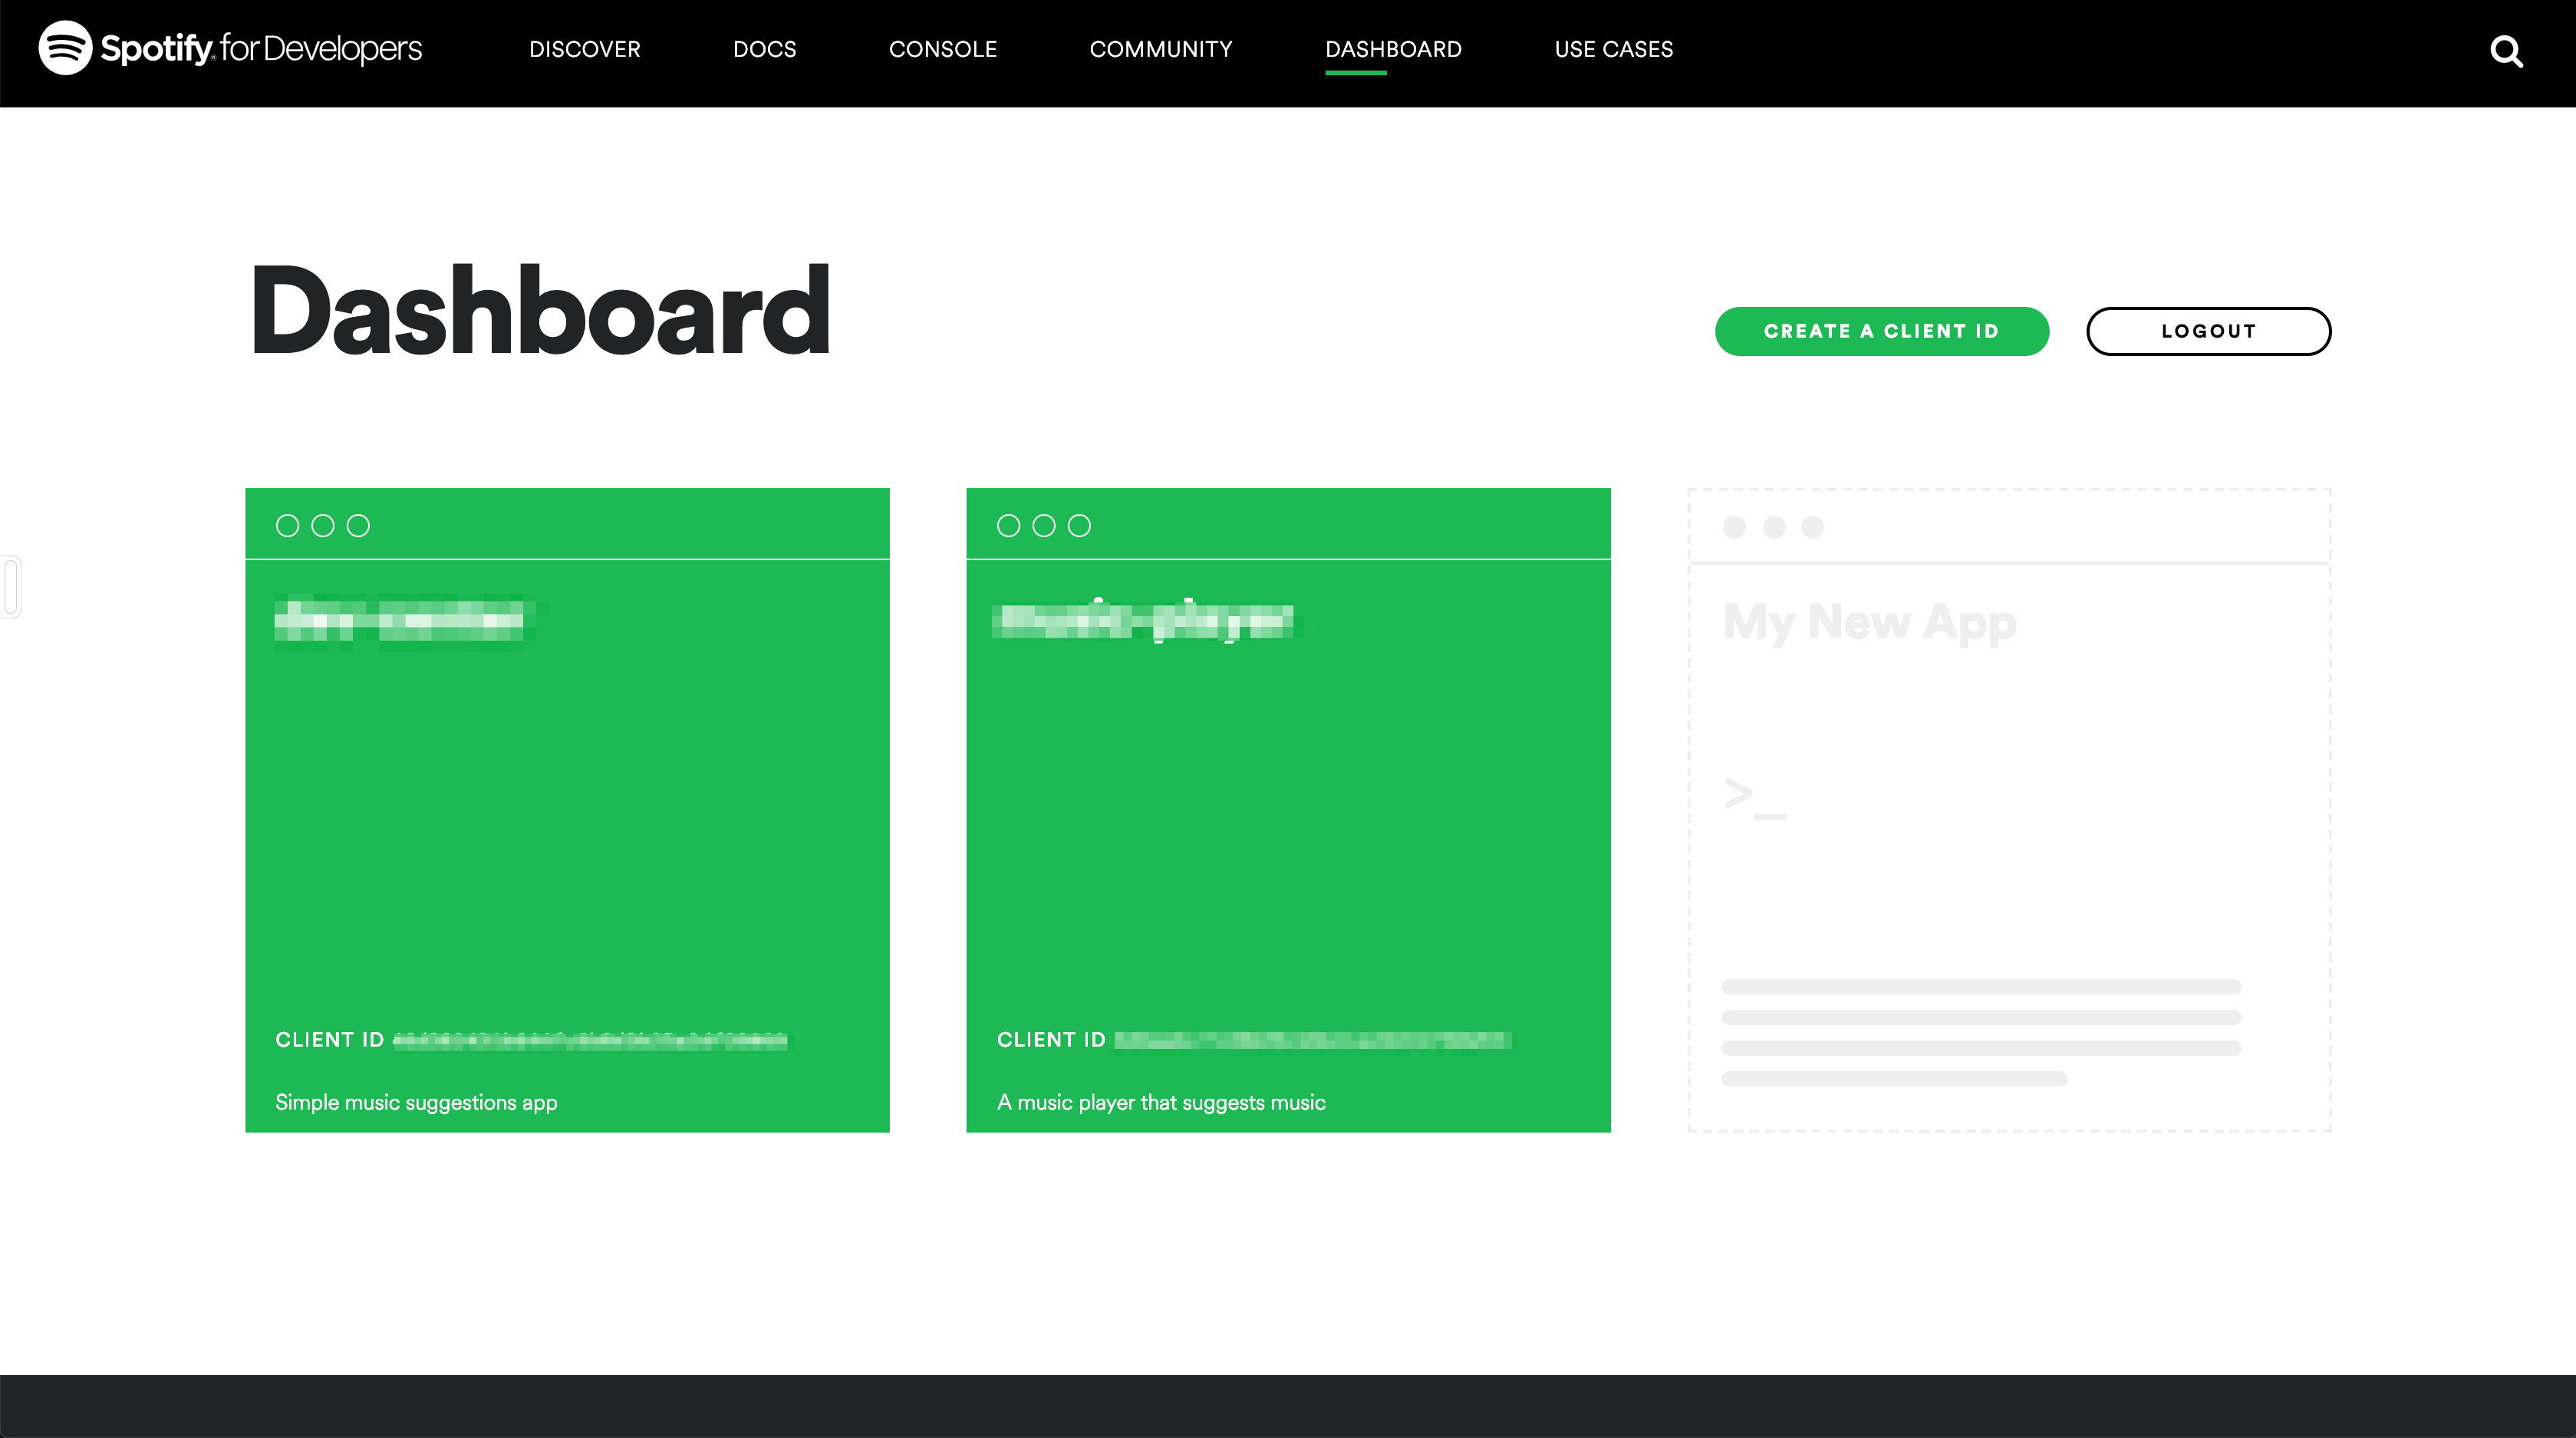 The developer dashboard. Existing applications will be listed.